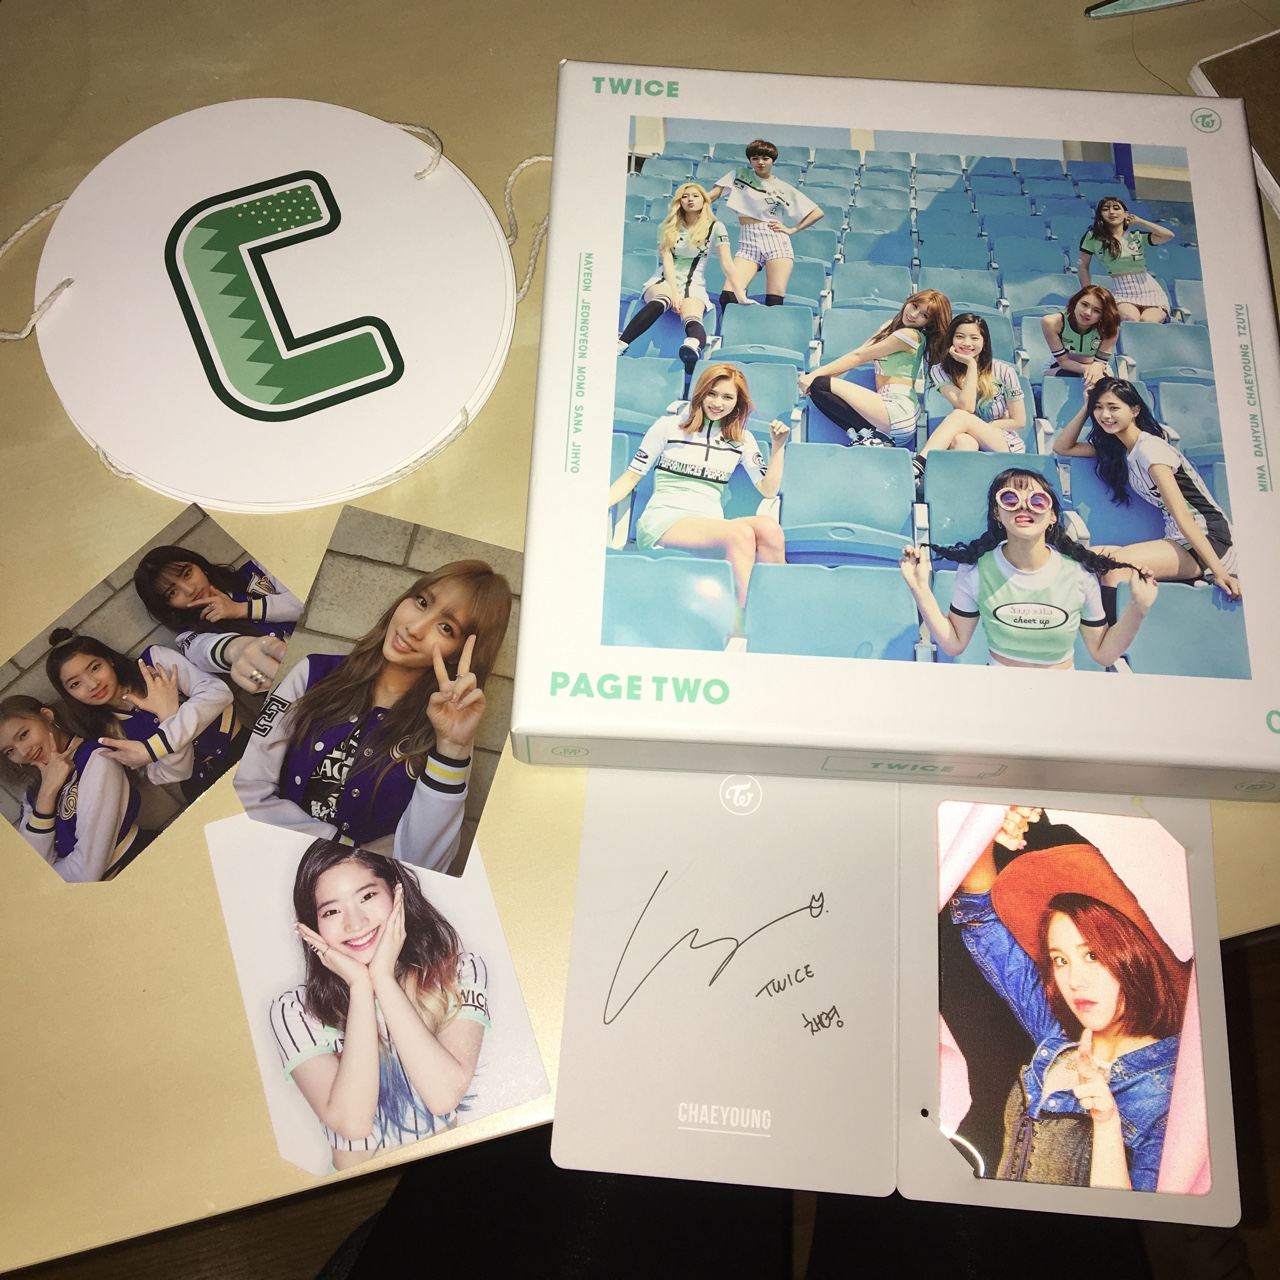 TWICE - PAGE TWO ALBUM - CHEER UP BANNER - CHAEYOUNG    - Depop